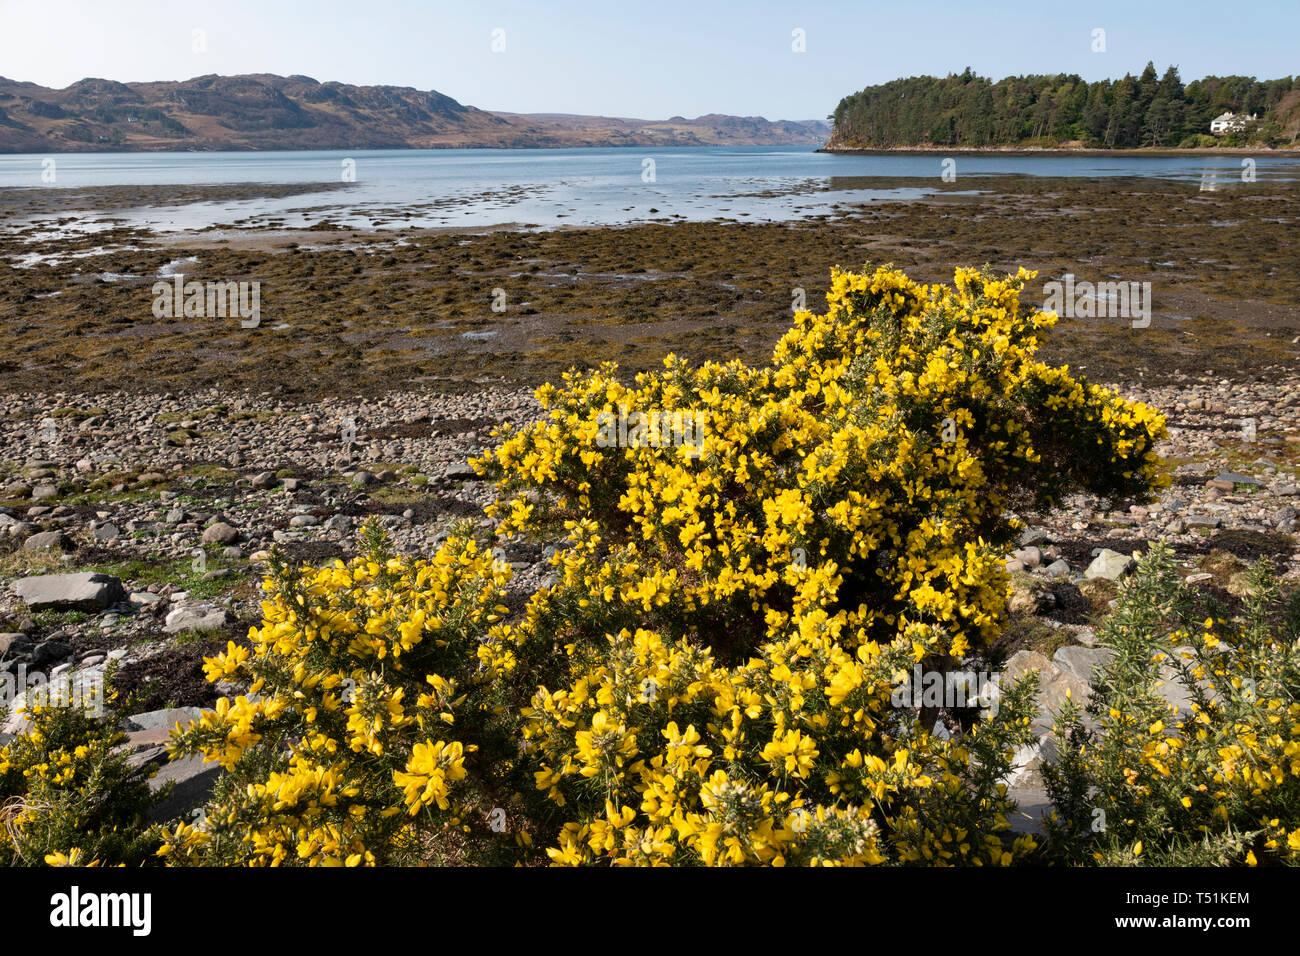 Gorse bushes by Loch Ewe at Poolewe, west coast of Scotland. Stock Photo